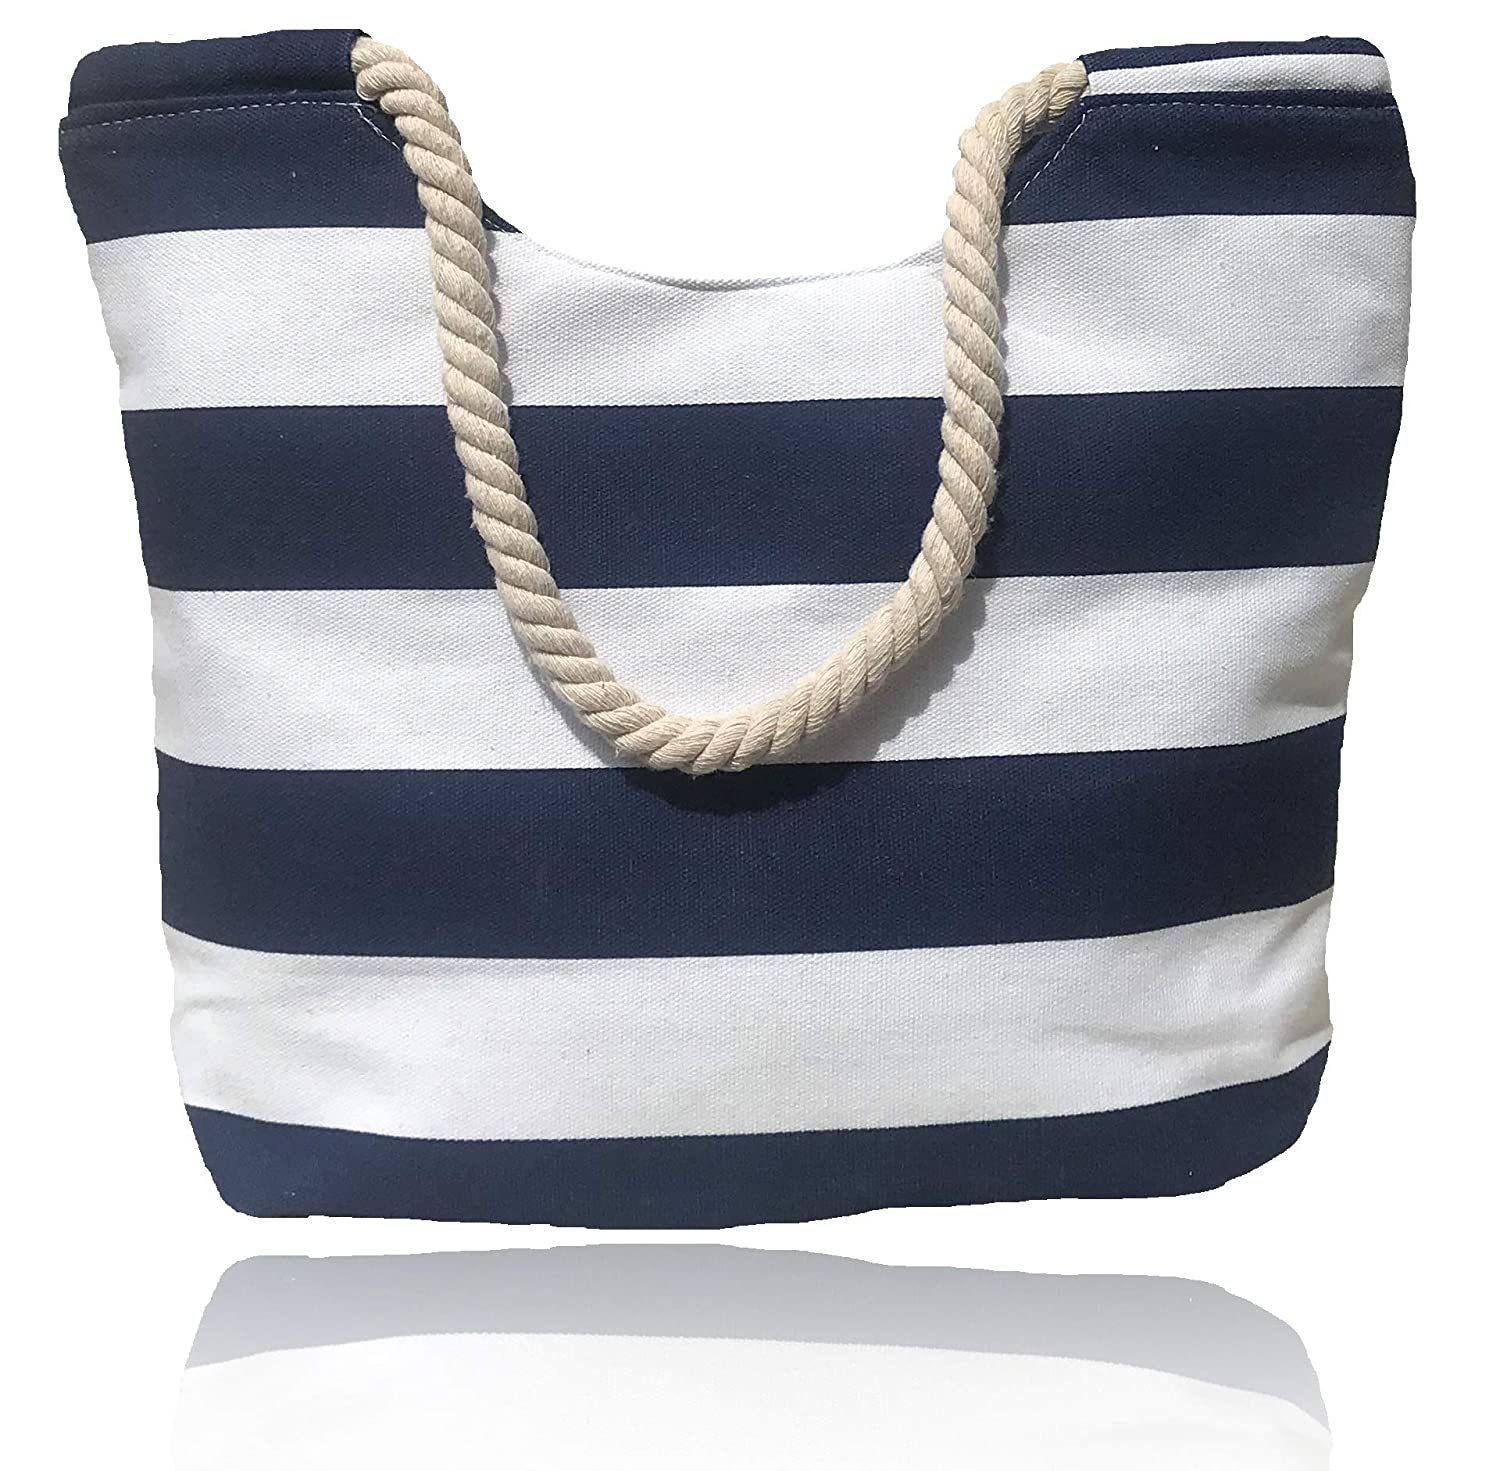 Beach Bag (Tote Bag) Summer Bag with waterproof lining, Inside Pocket, Rope handles Stripe Design for all beach essentials (Blue & White)